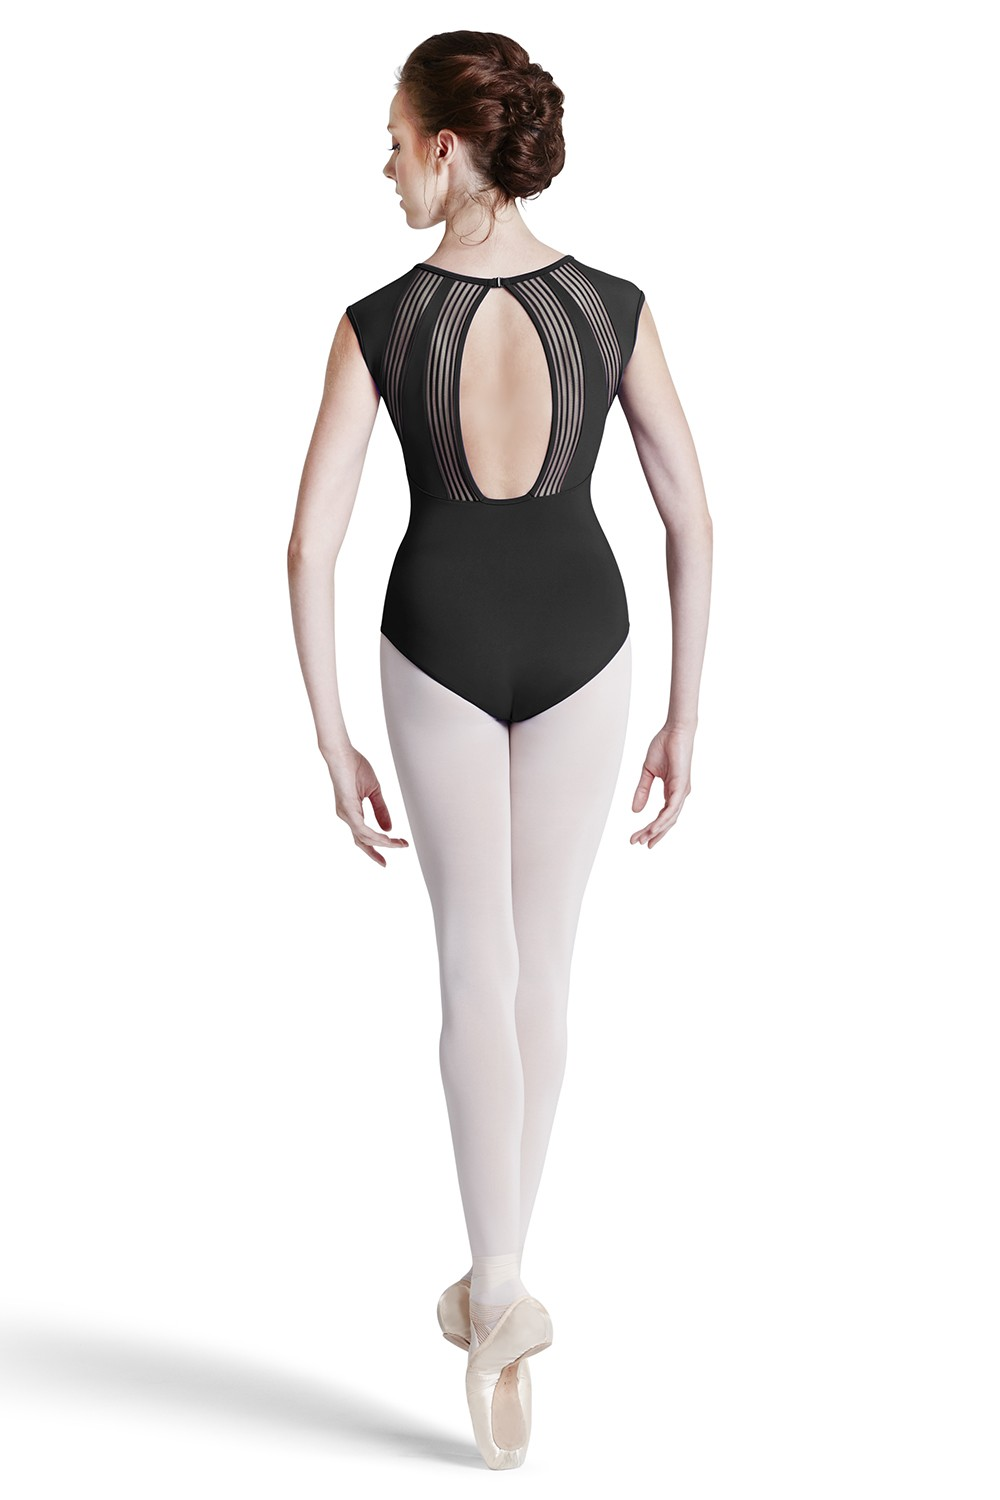 Keyhole Back Capslive Women's Dance Leotards